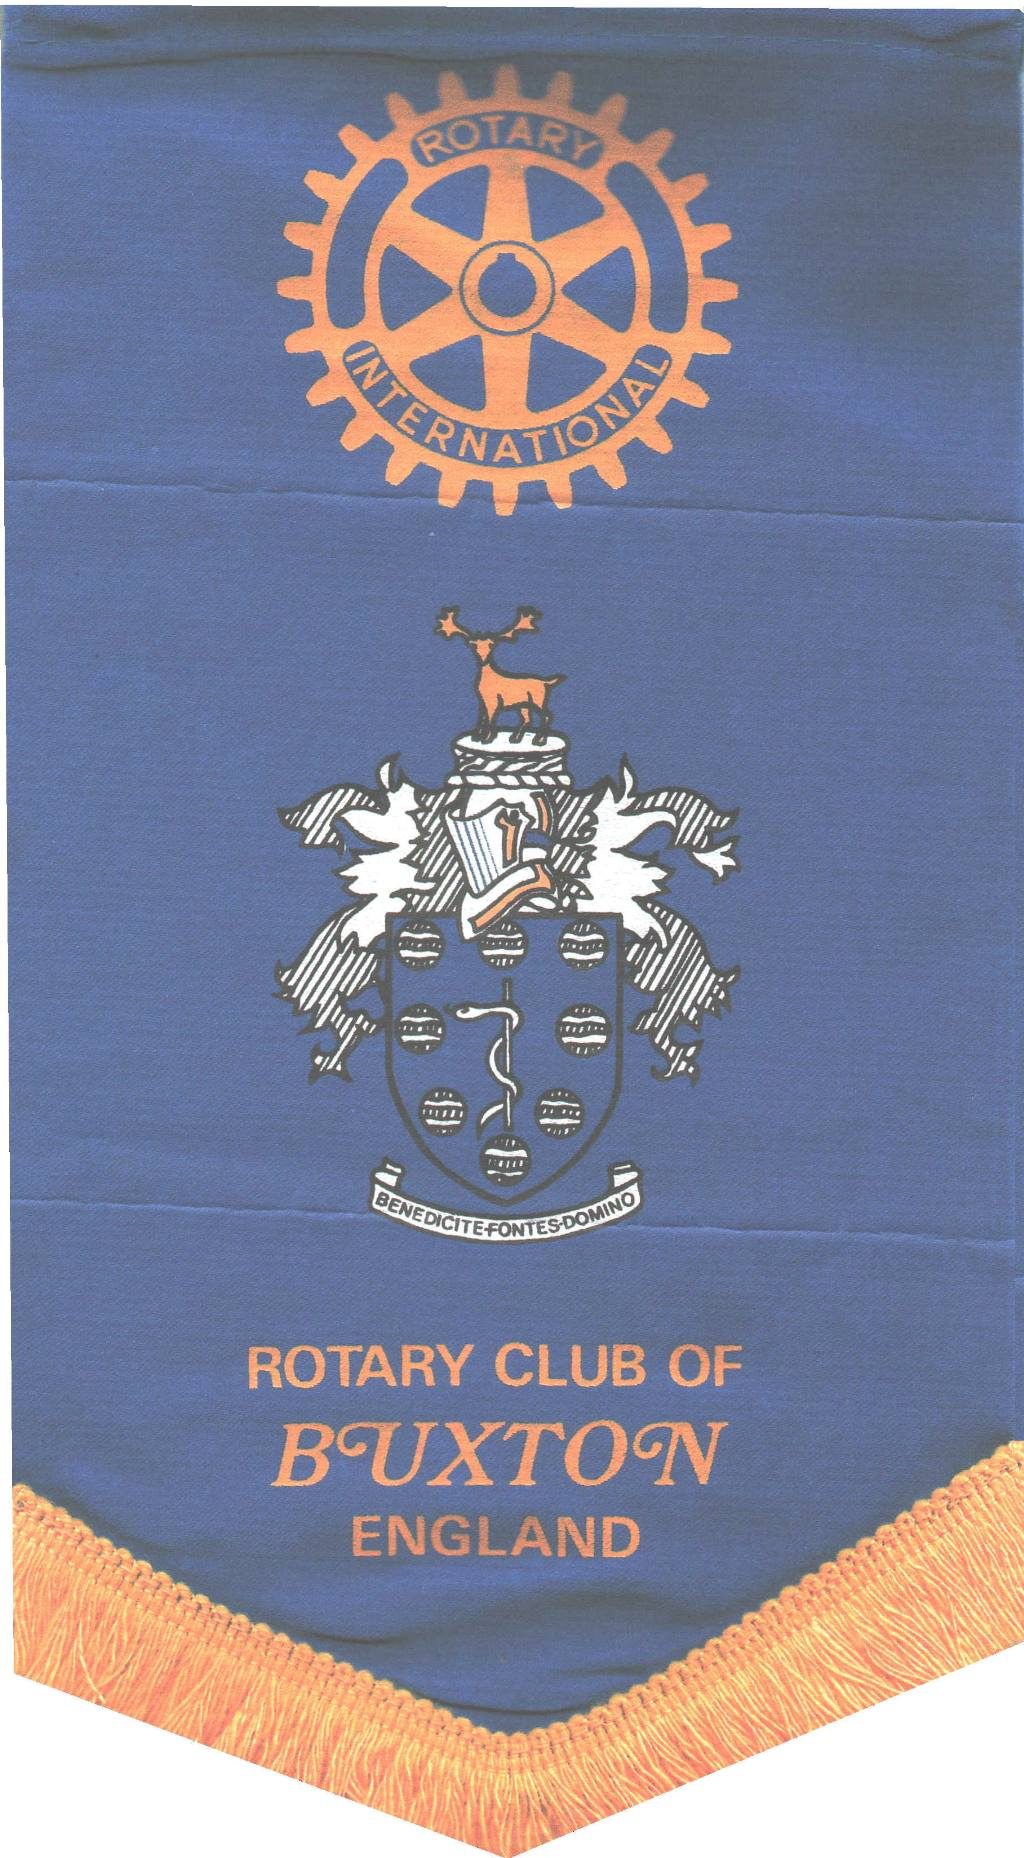 Rotary Club of Buxton Banner - Previous Banner featuring the Borough of Buxton Coat of Arms